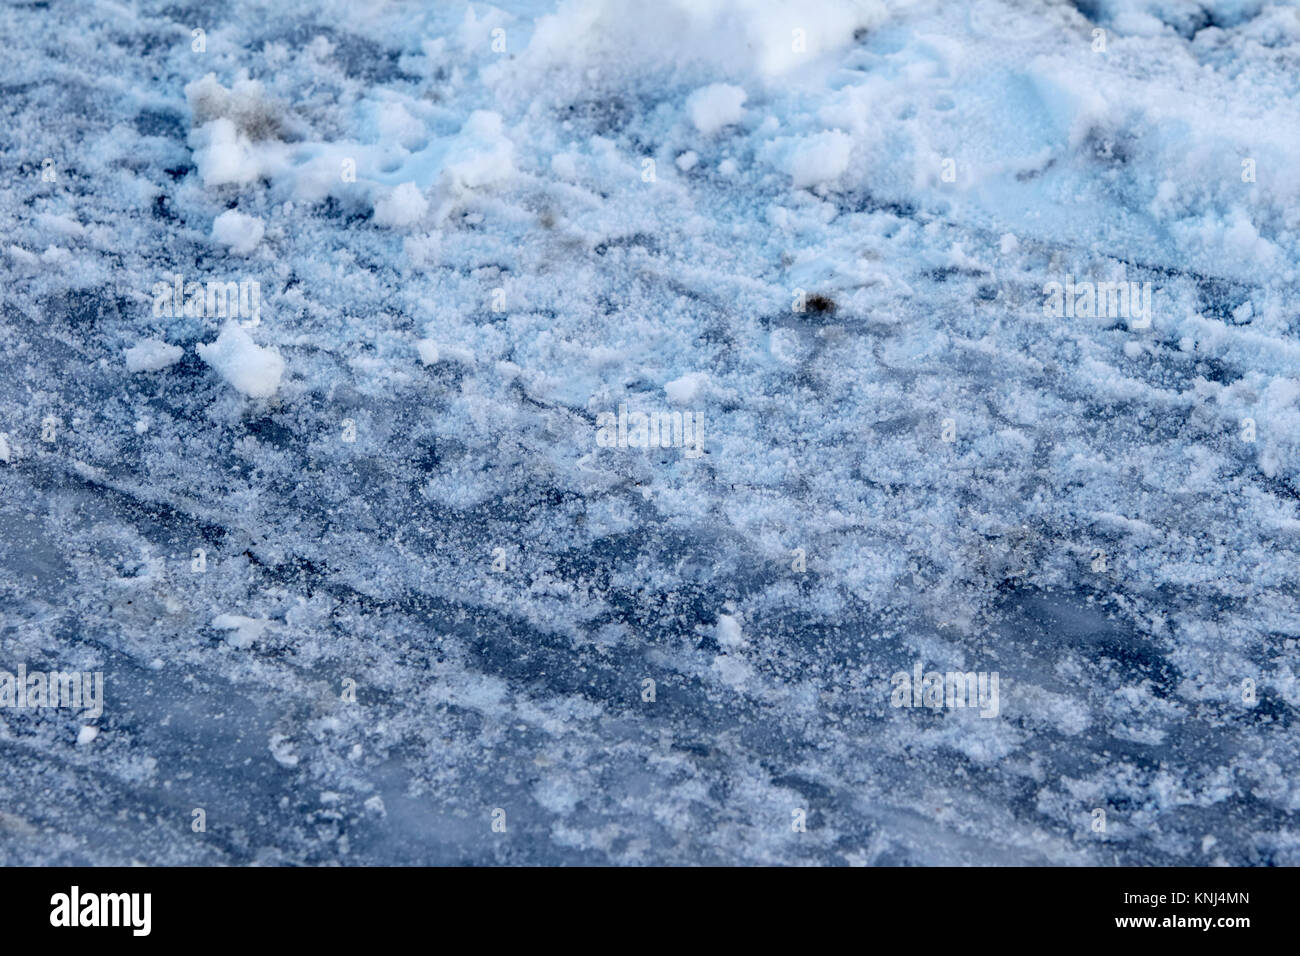 tyre tracks in compacted snow showing black ice underneath newtownabbey northern ireland uk - Stock Image